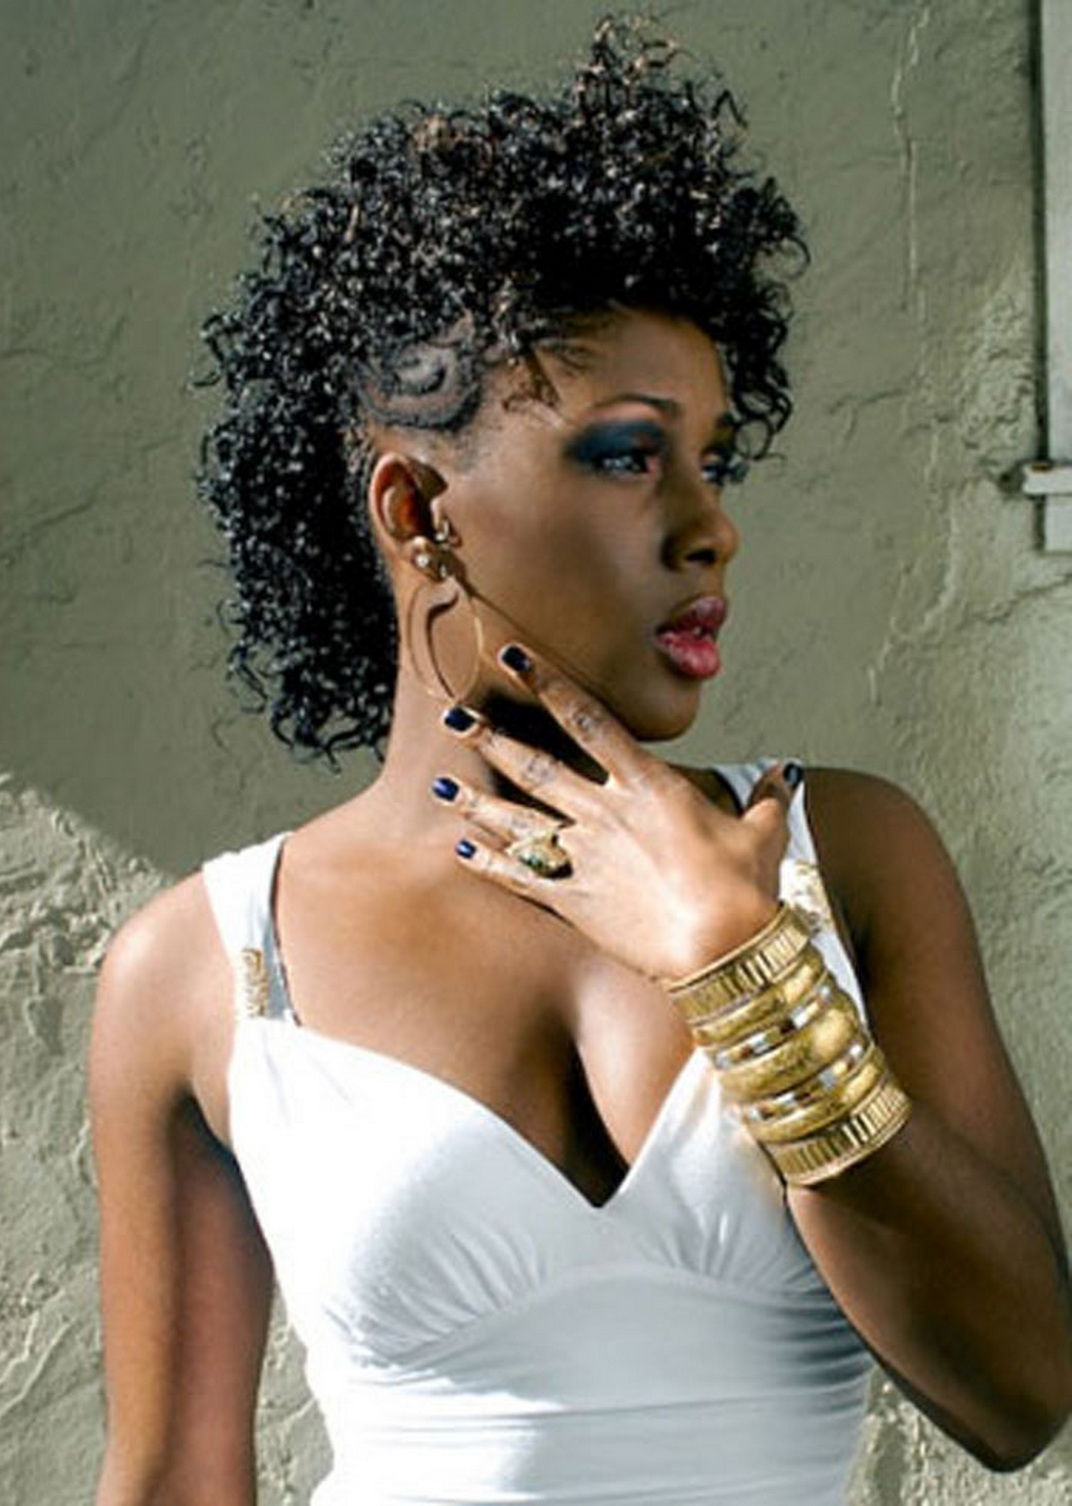 Cool Top Mohawk Hairstyles For Black Women Heey Fashion Style Short Hairstyles For Black Women Fulllsitofus